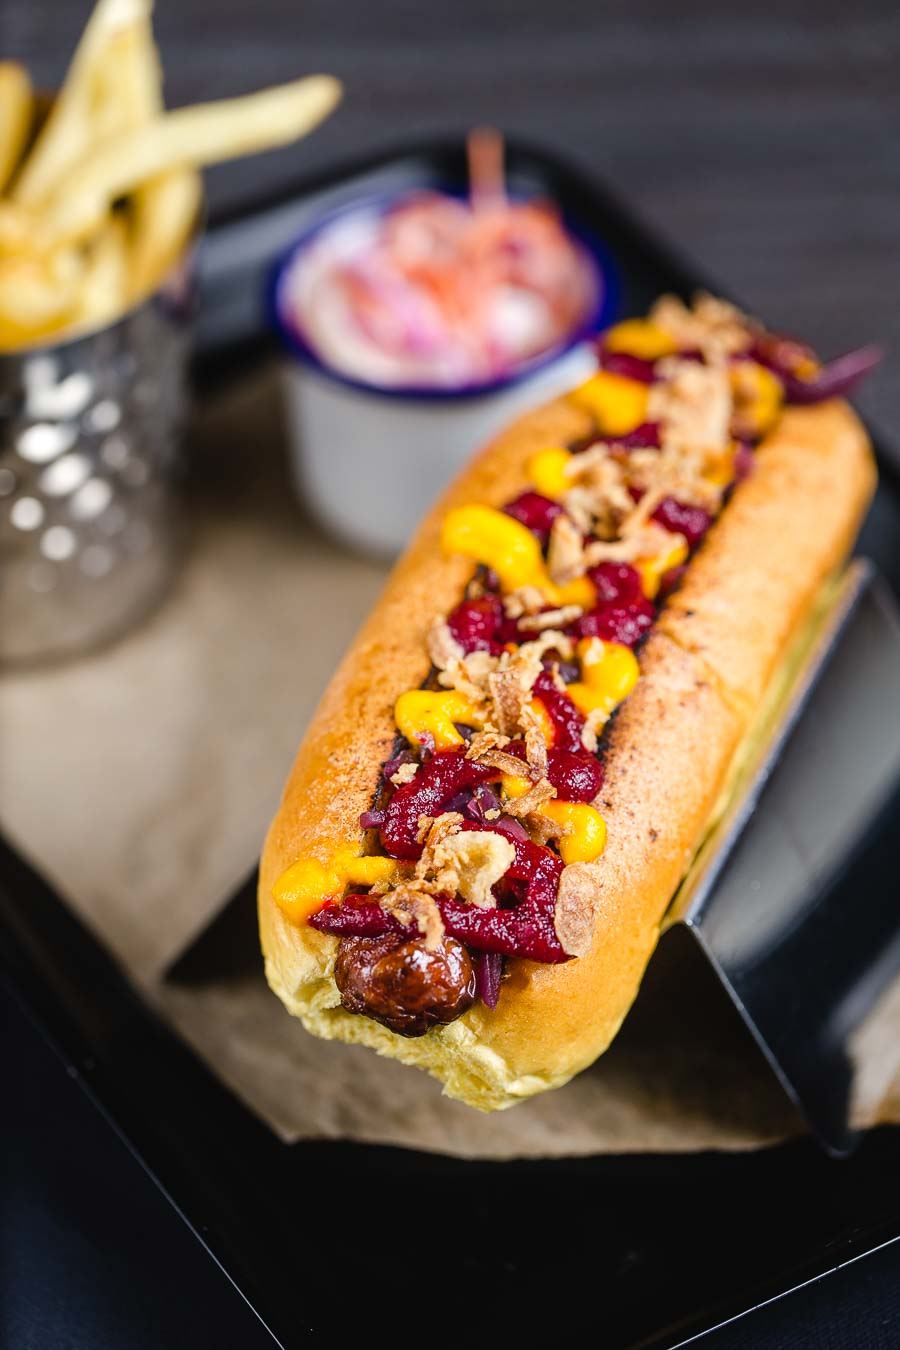 A chilli hotdog dressed with a spicy tomato ketchup, mustard and crispy onion pieces with a container of fries and tub of coleslaw in the background. Served at The Bootroom at LFC Anfield